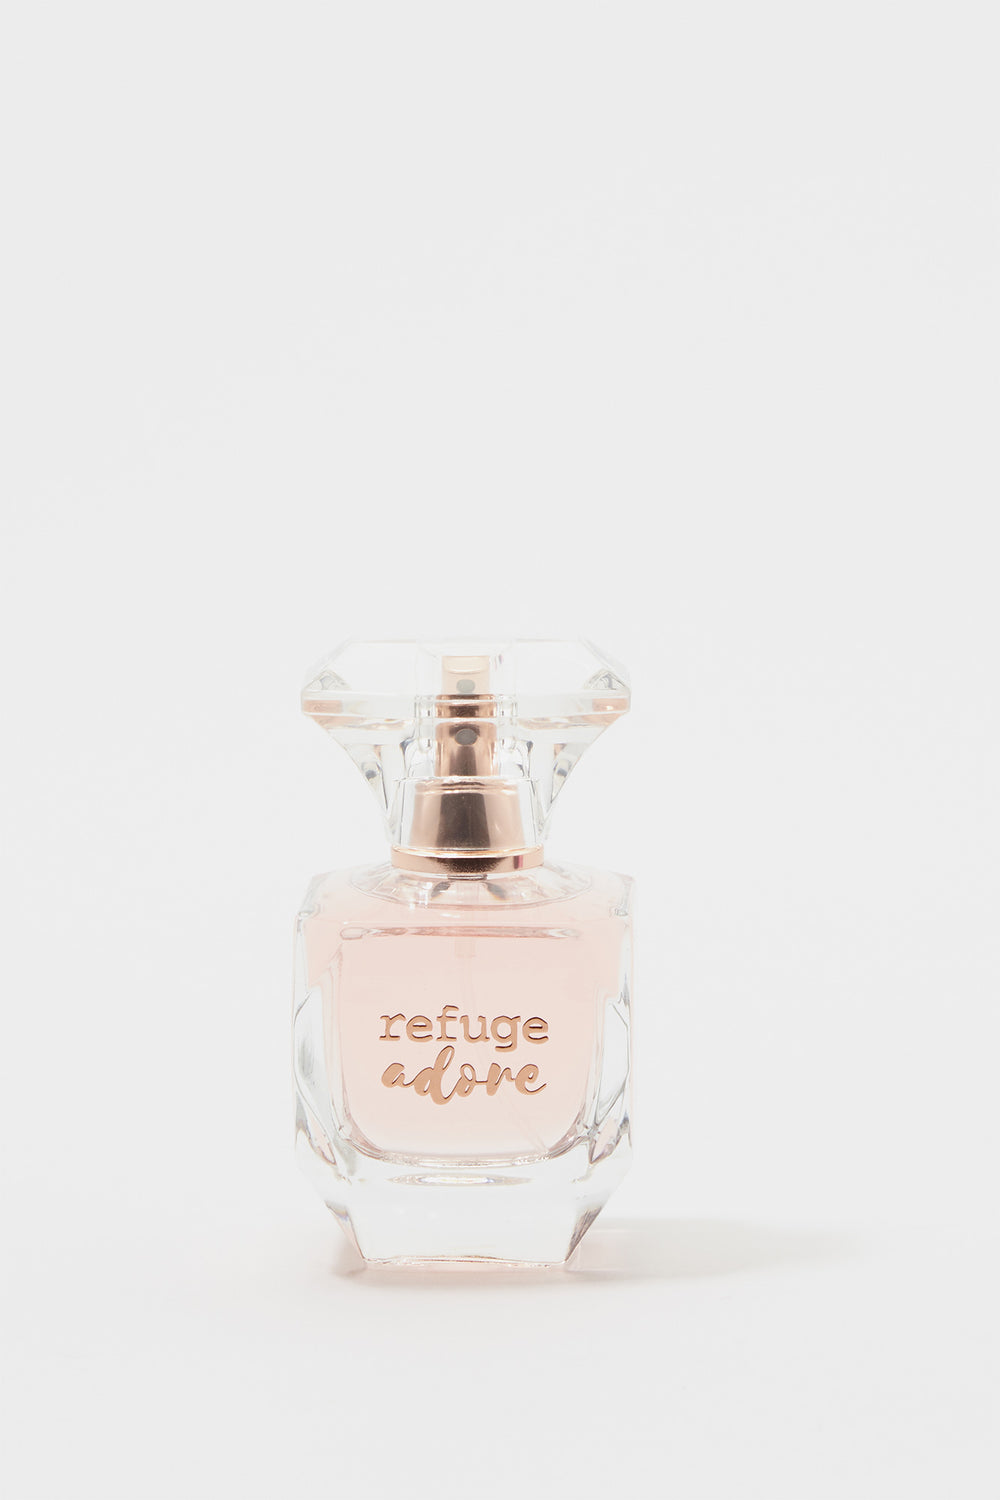 Refuge Adore Perfume Assorted